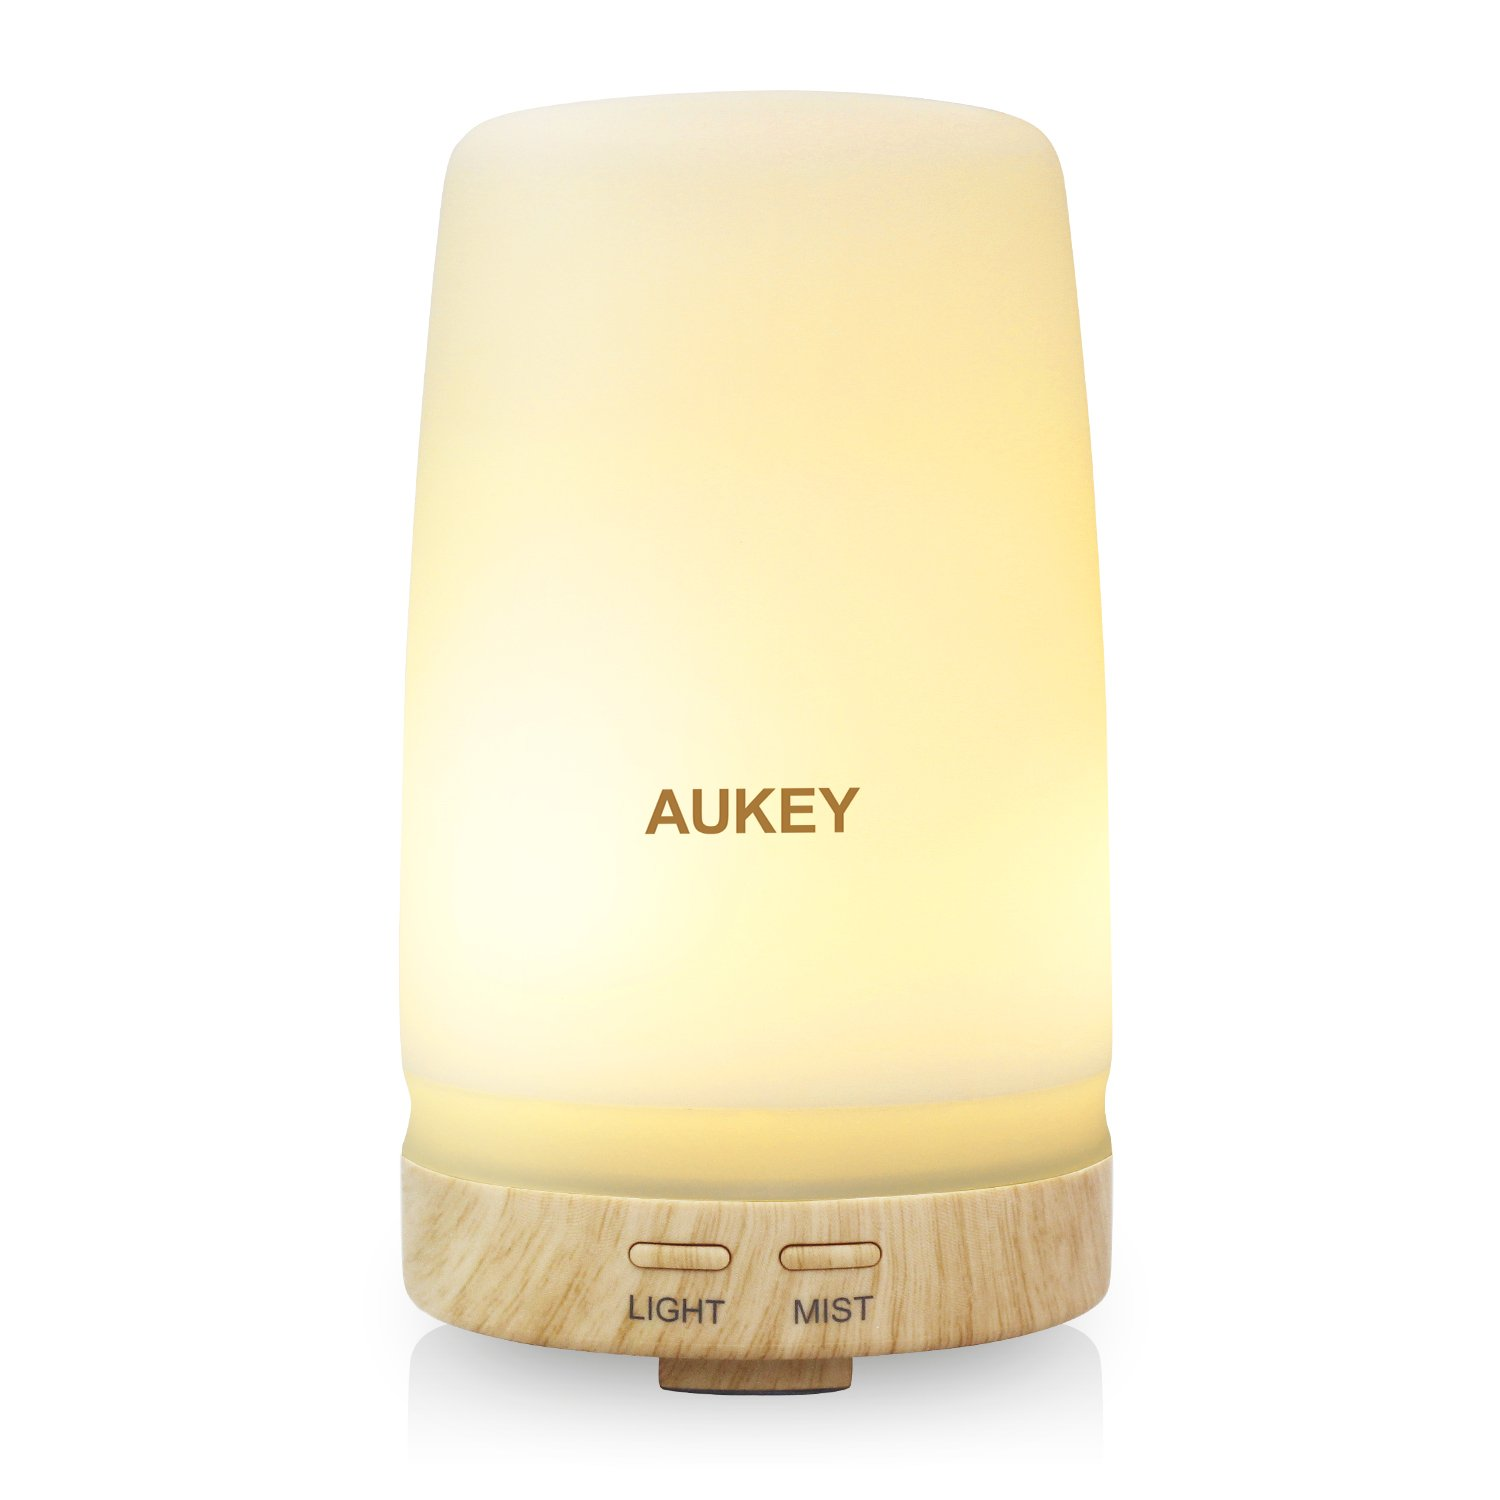 AUKEY Aroma Diffuser with Two Color LED Light, 100ml